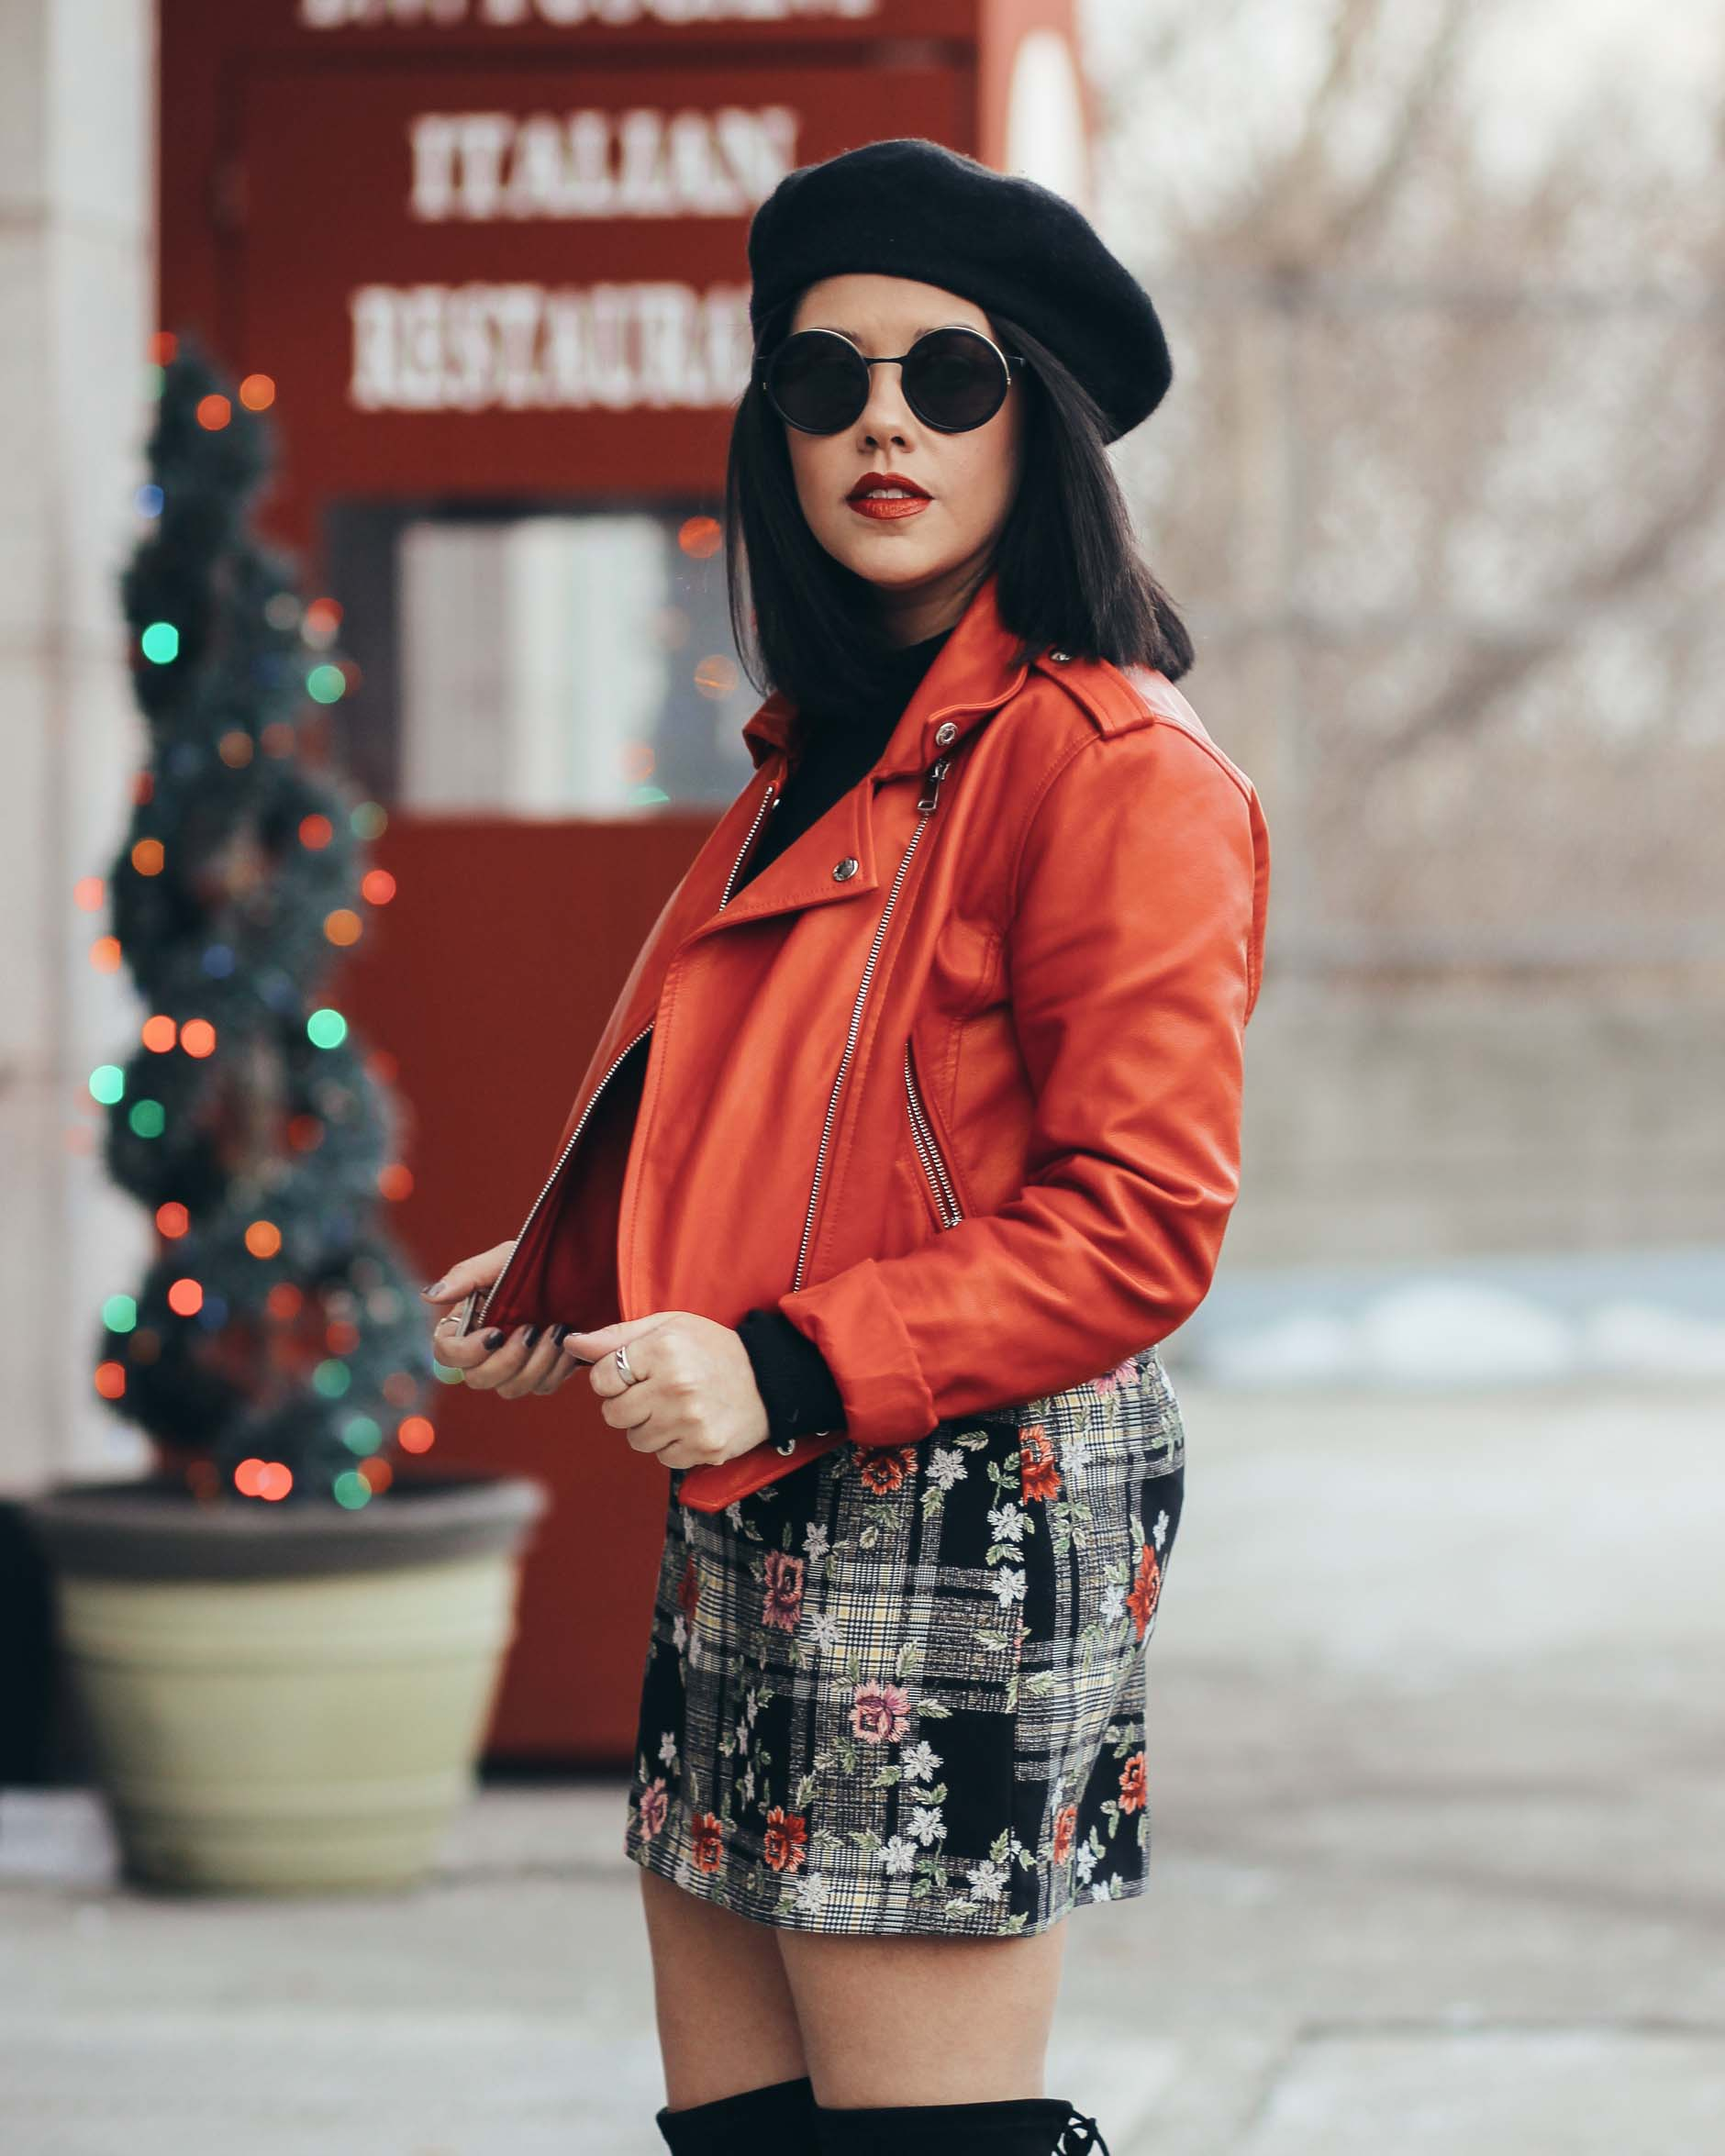 naty michele wearing a red moto jacket with floral skirt